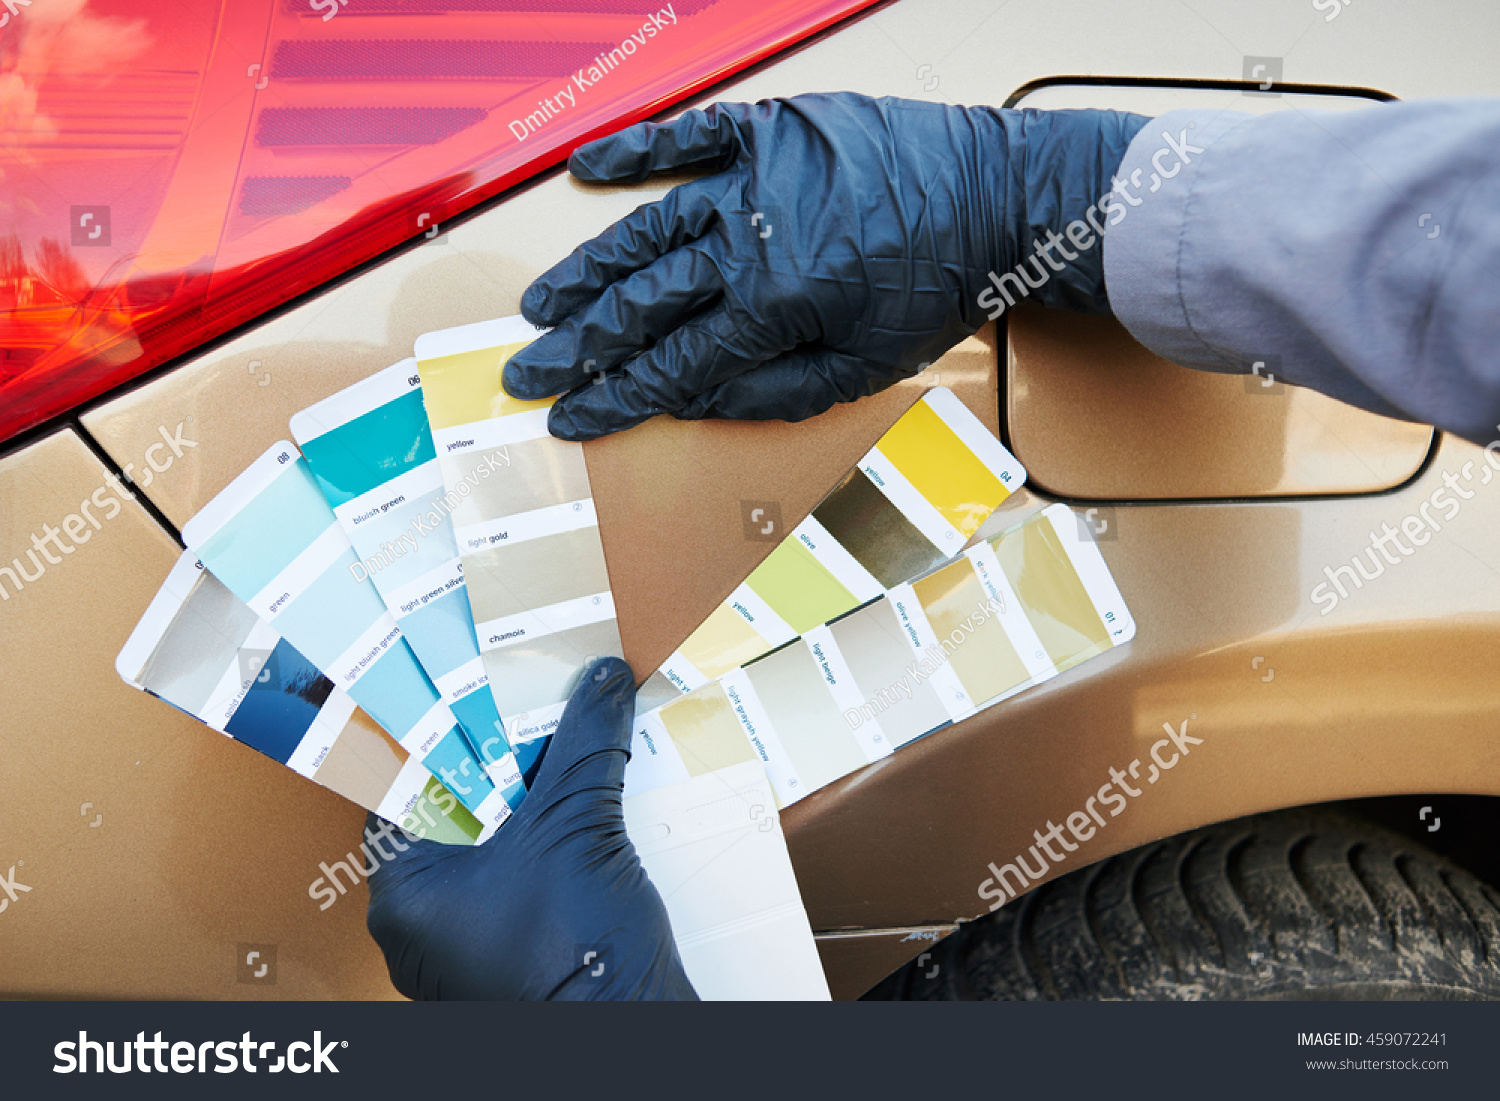 Auto Color Matching Colorists Man Selecting Stock Photo 459072241 ...